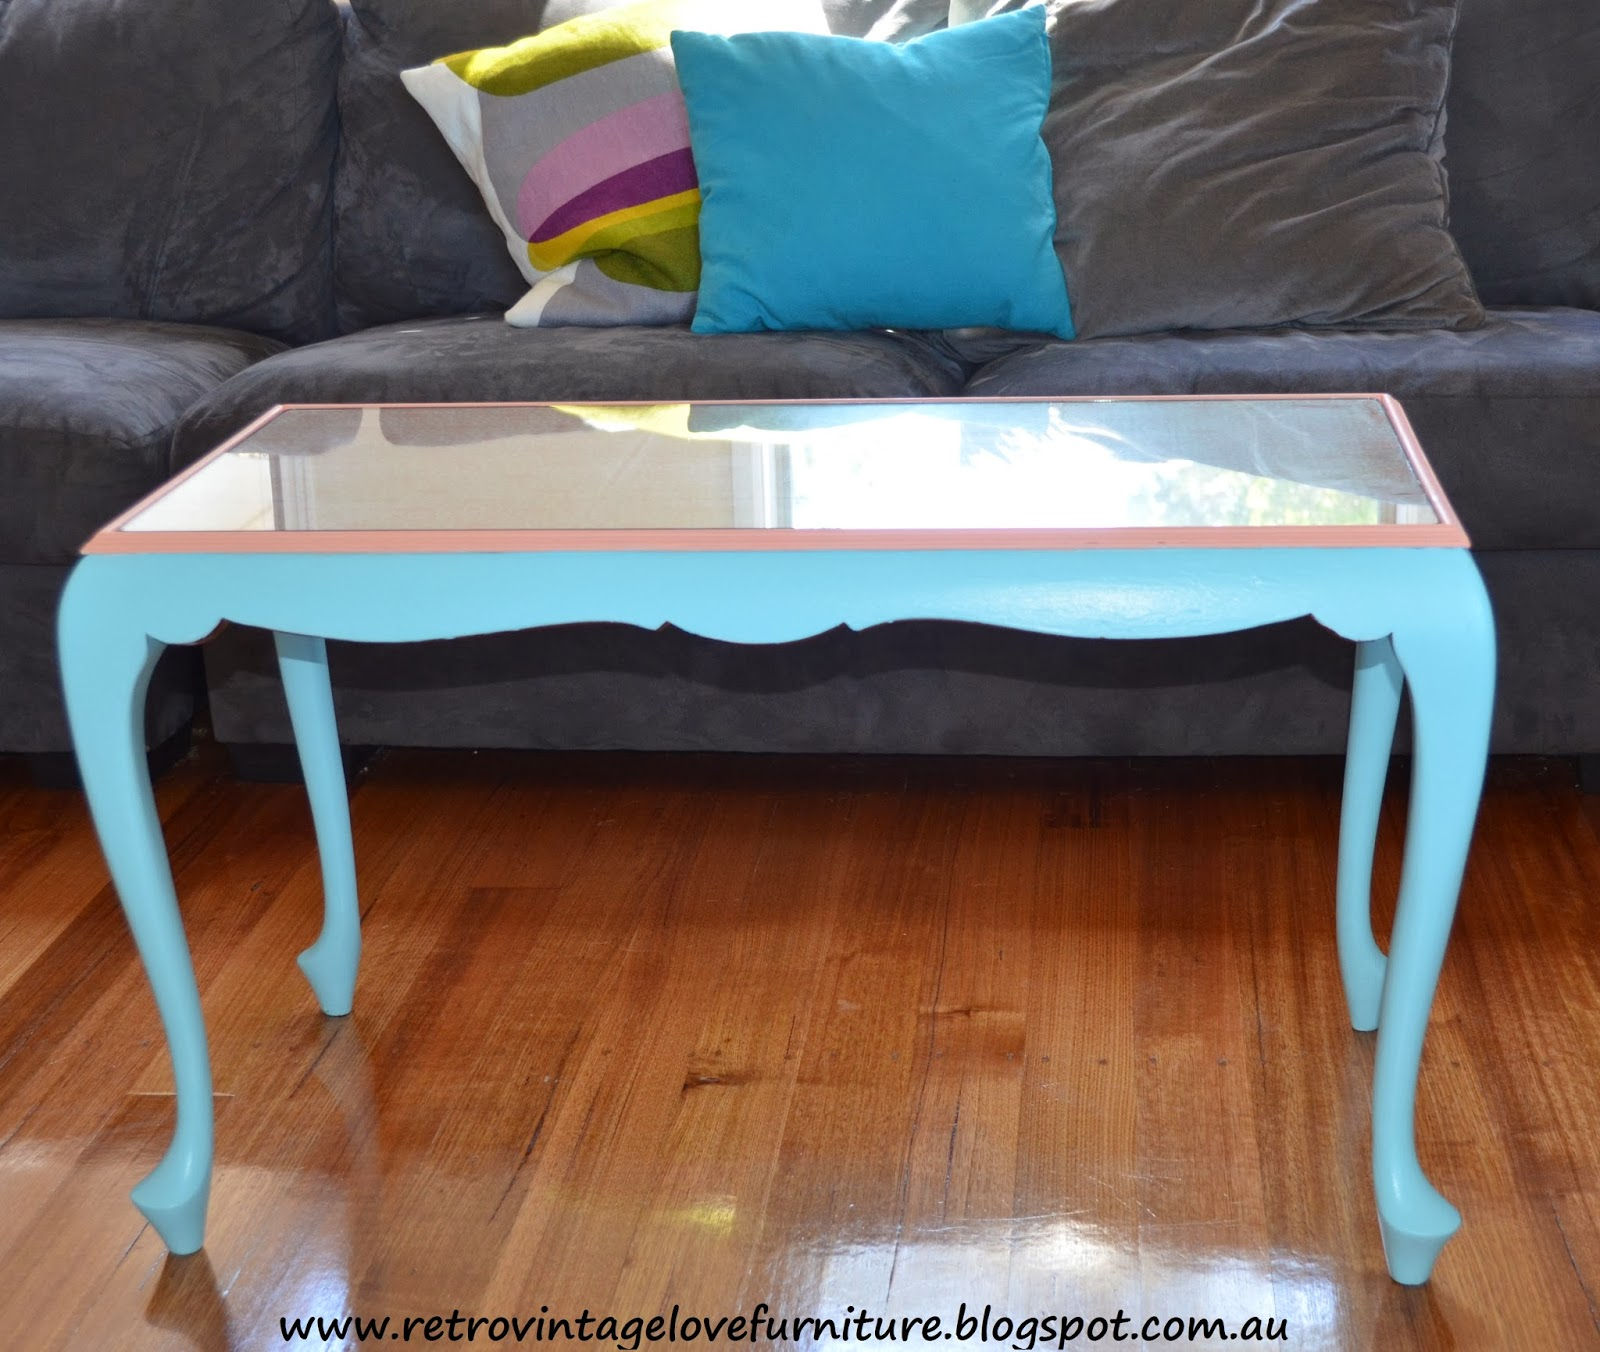 Retro Vintage Love Aqua and Coral Queen Anne Coffee Table with